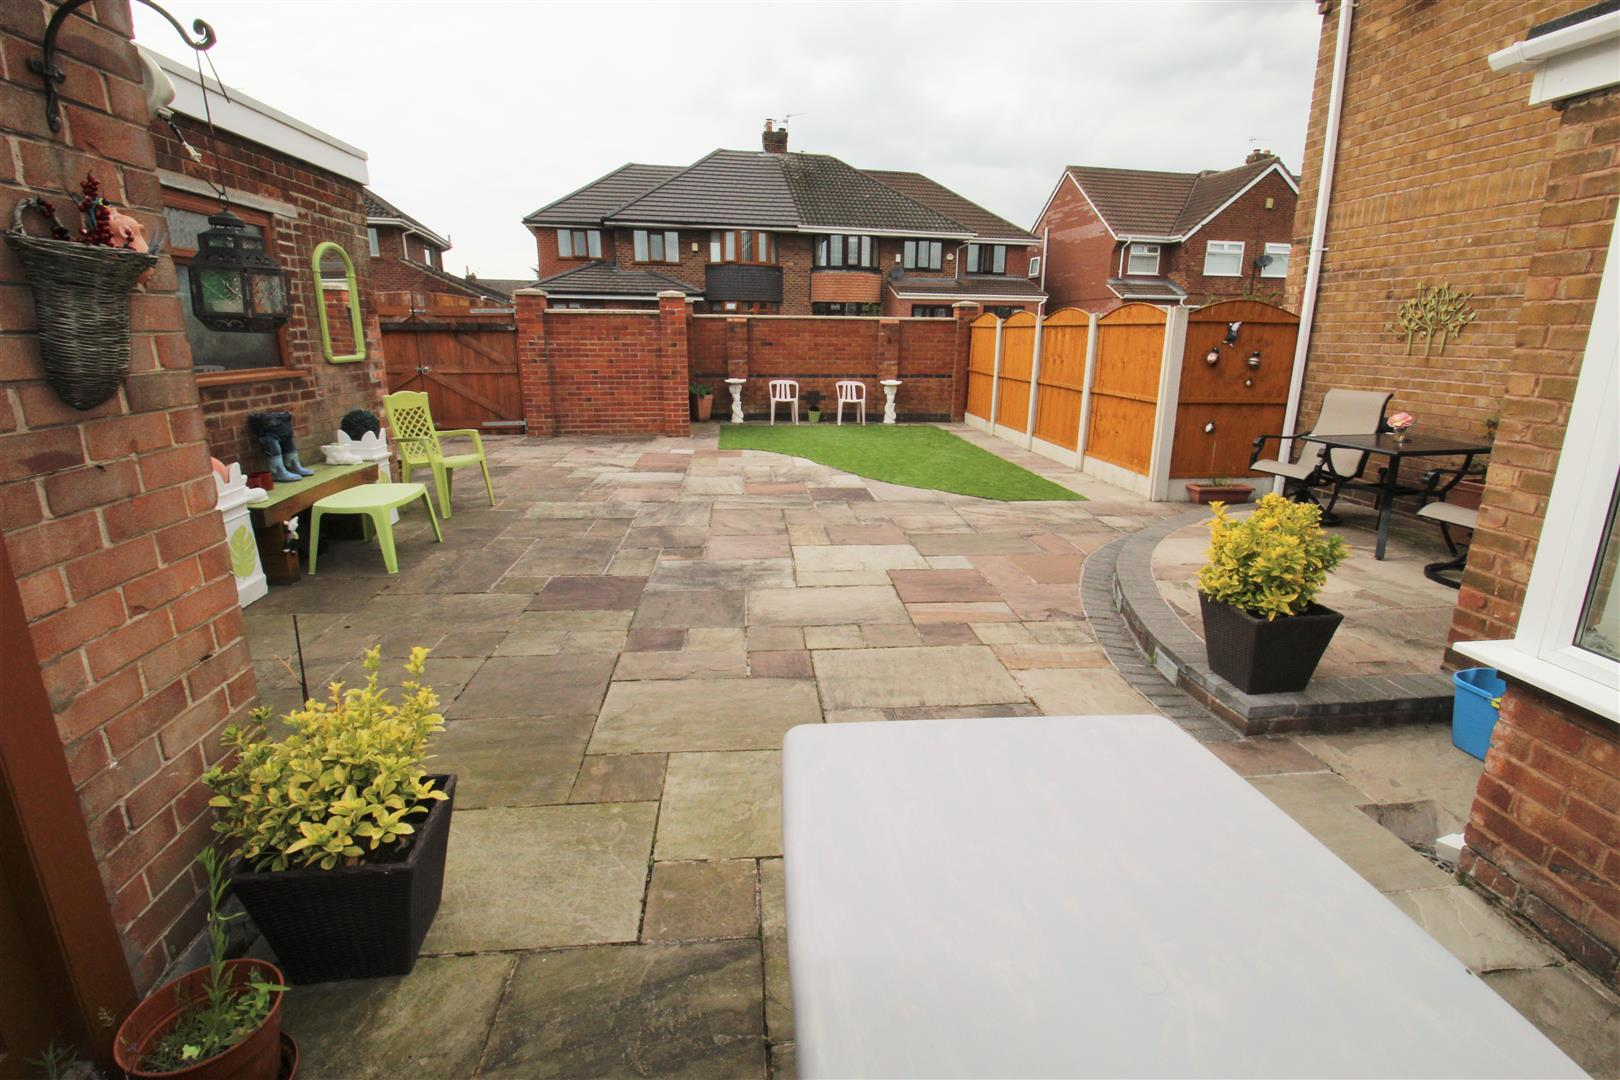 3 Bedrooms, House - Semi-Detached, Felsted Drive, Liverpool